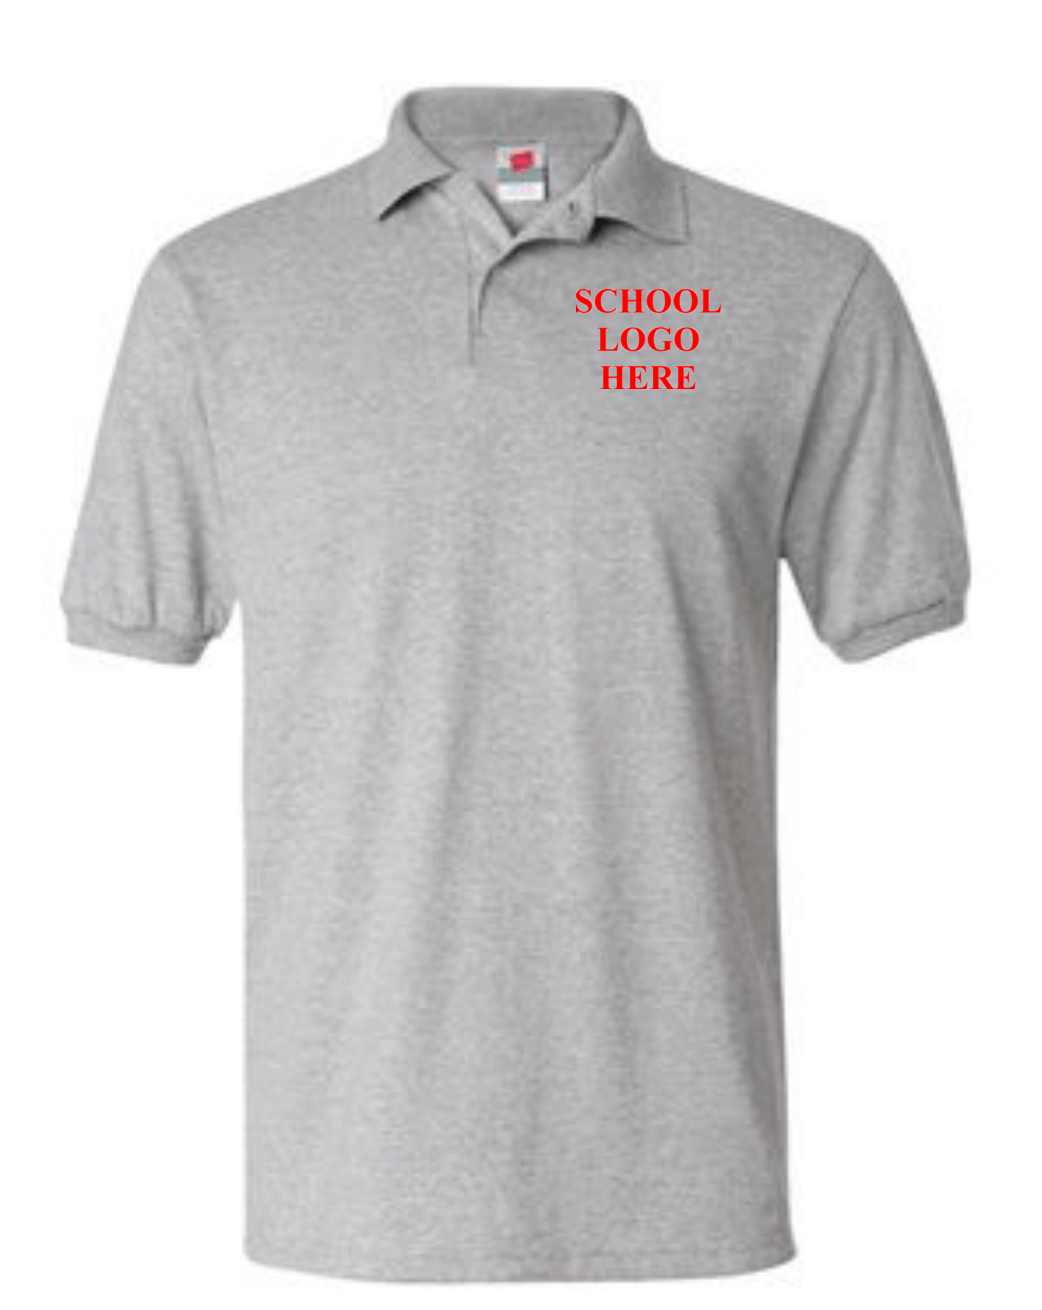 Dilworth STEM Academy Sport Grey Polo